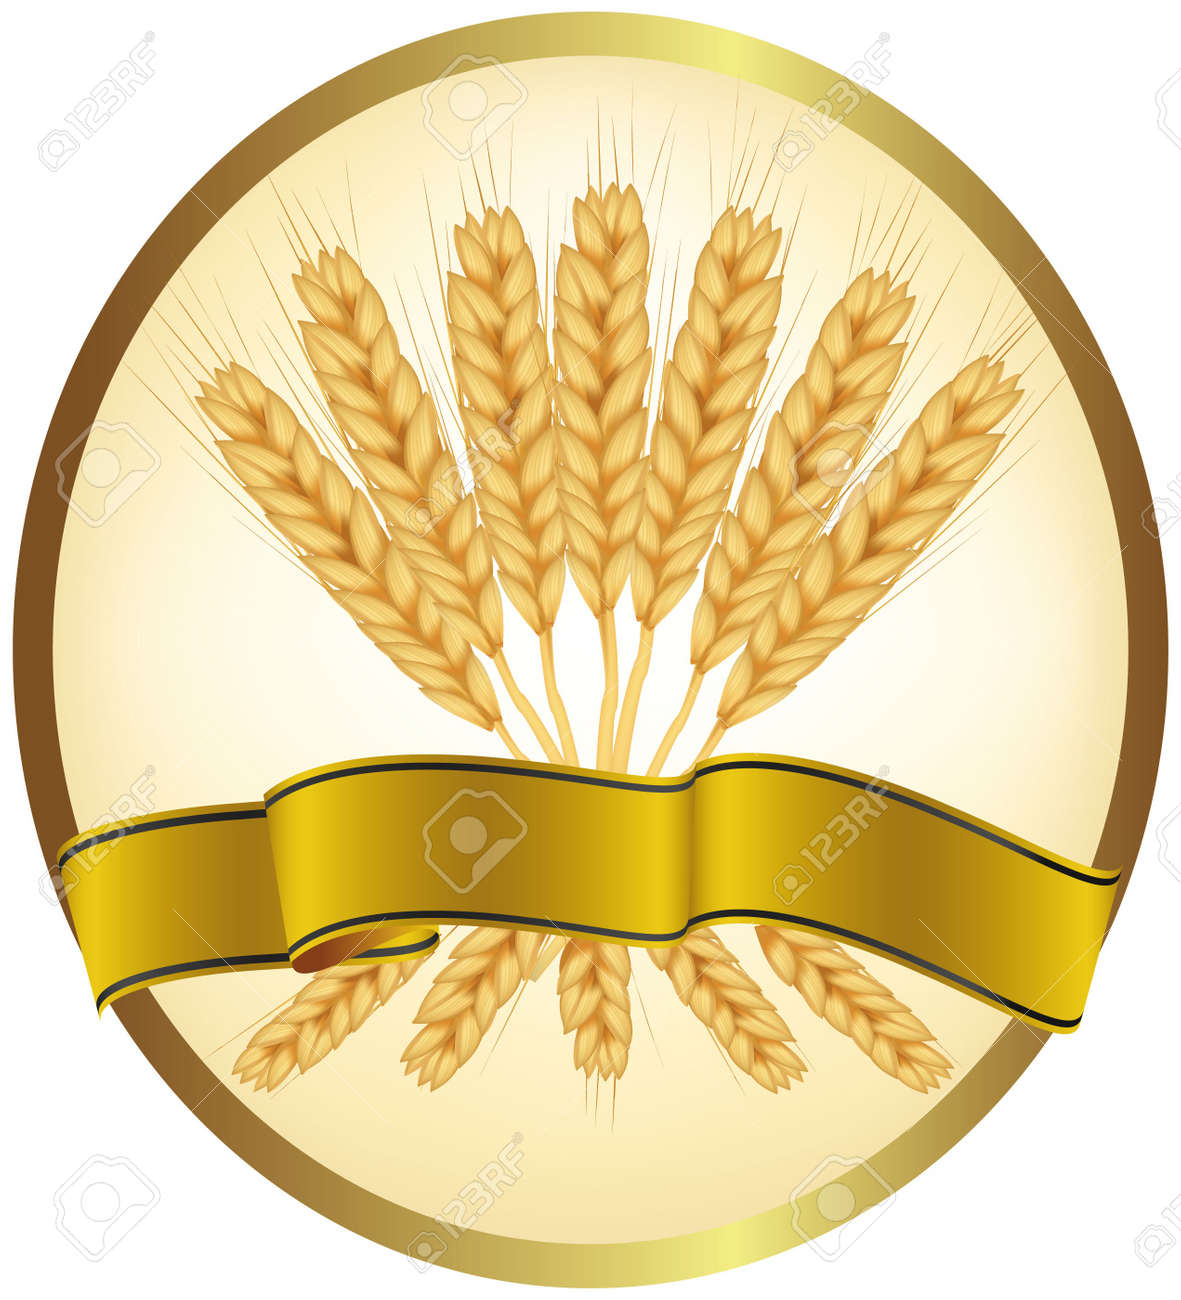 Ears of wheat and ribbons Stock Vector - 9665048